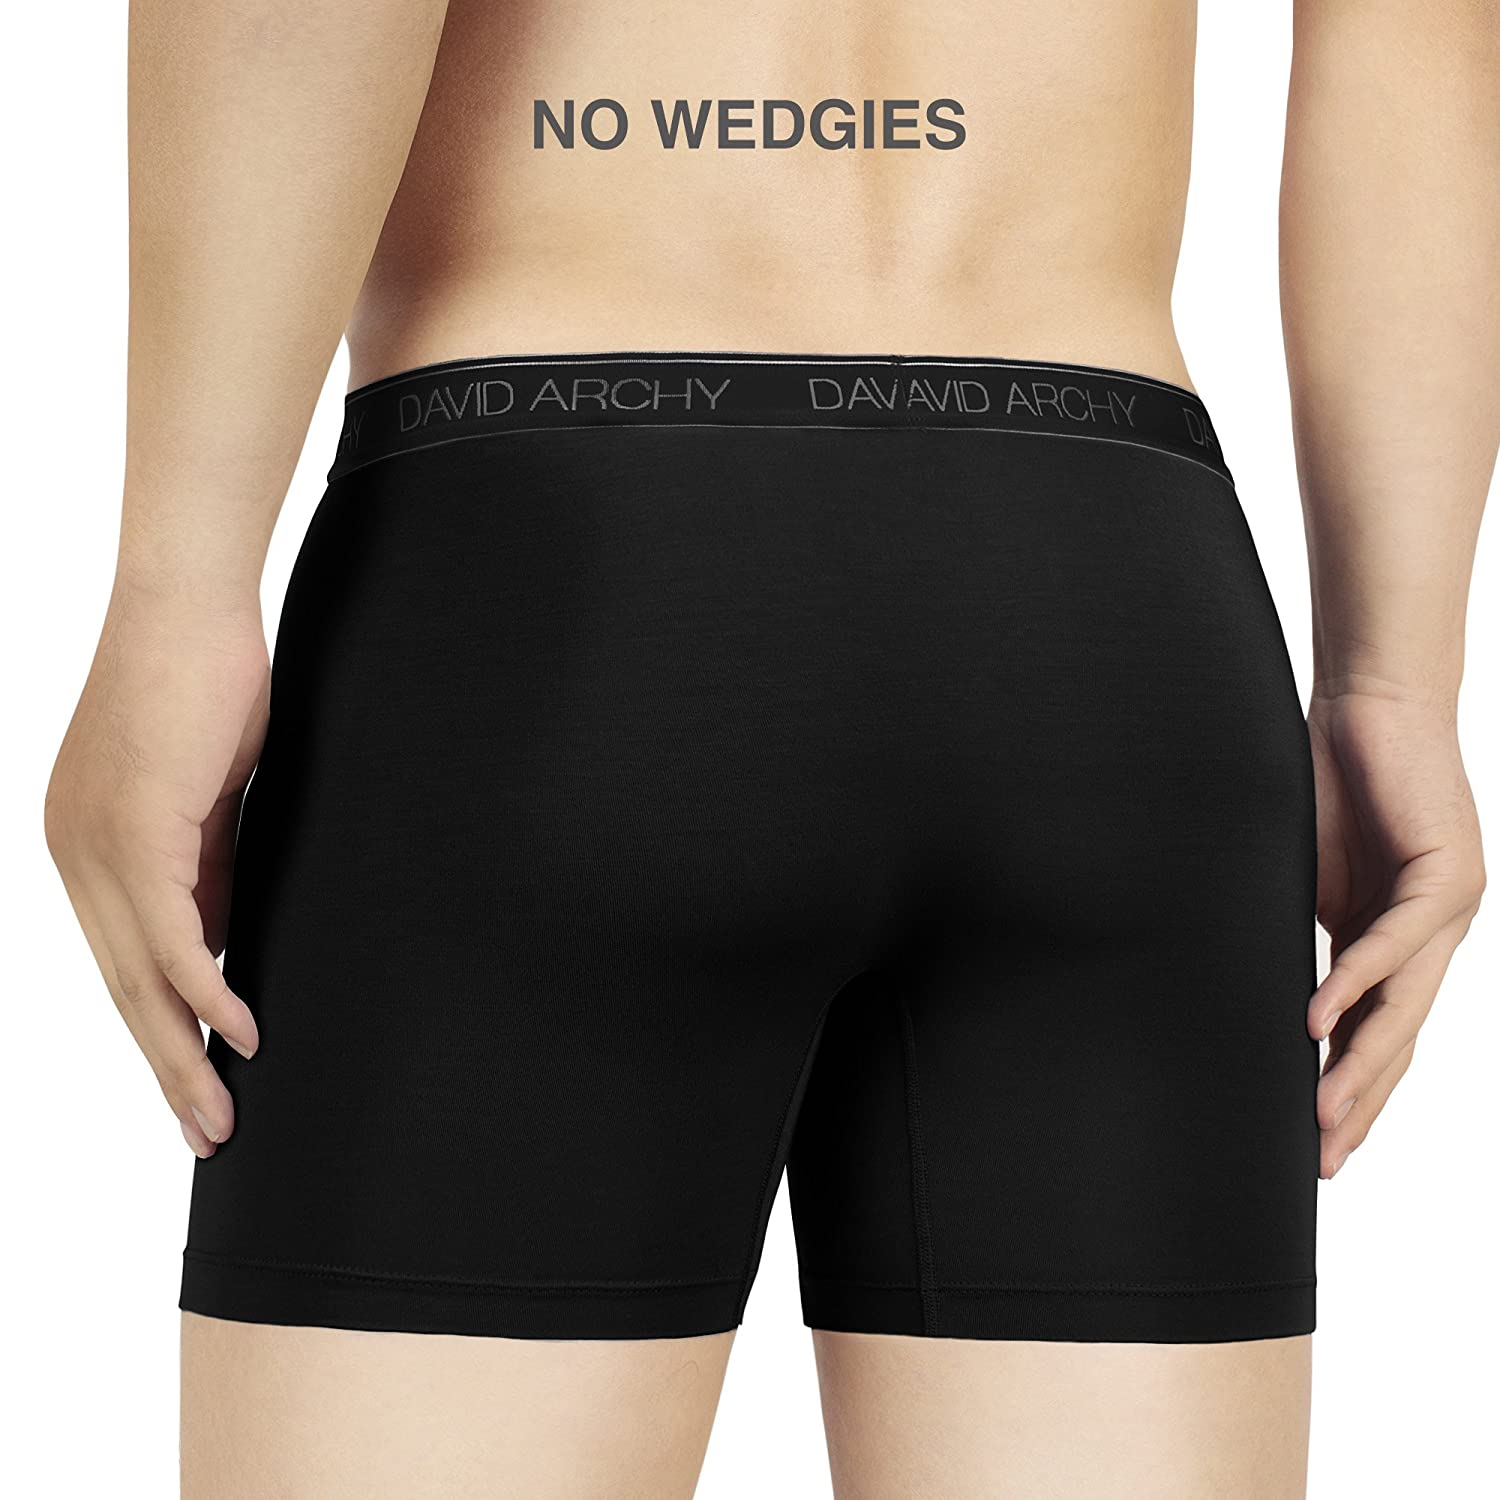 David Archy Mens 3 Pack Underwear Micro Modal Separate Pouches Boxer Briefs with Fly